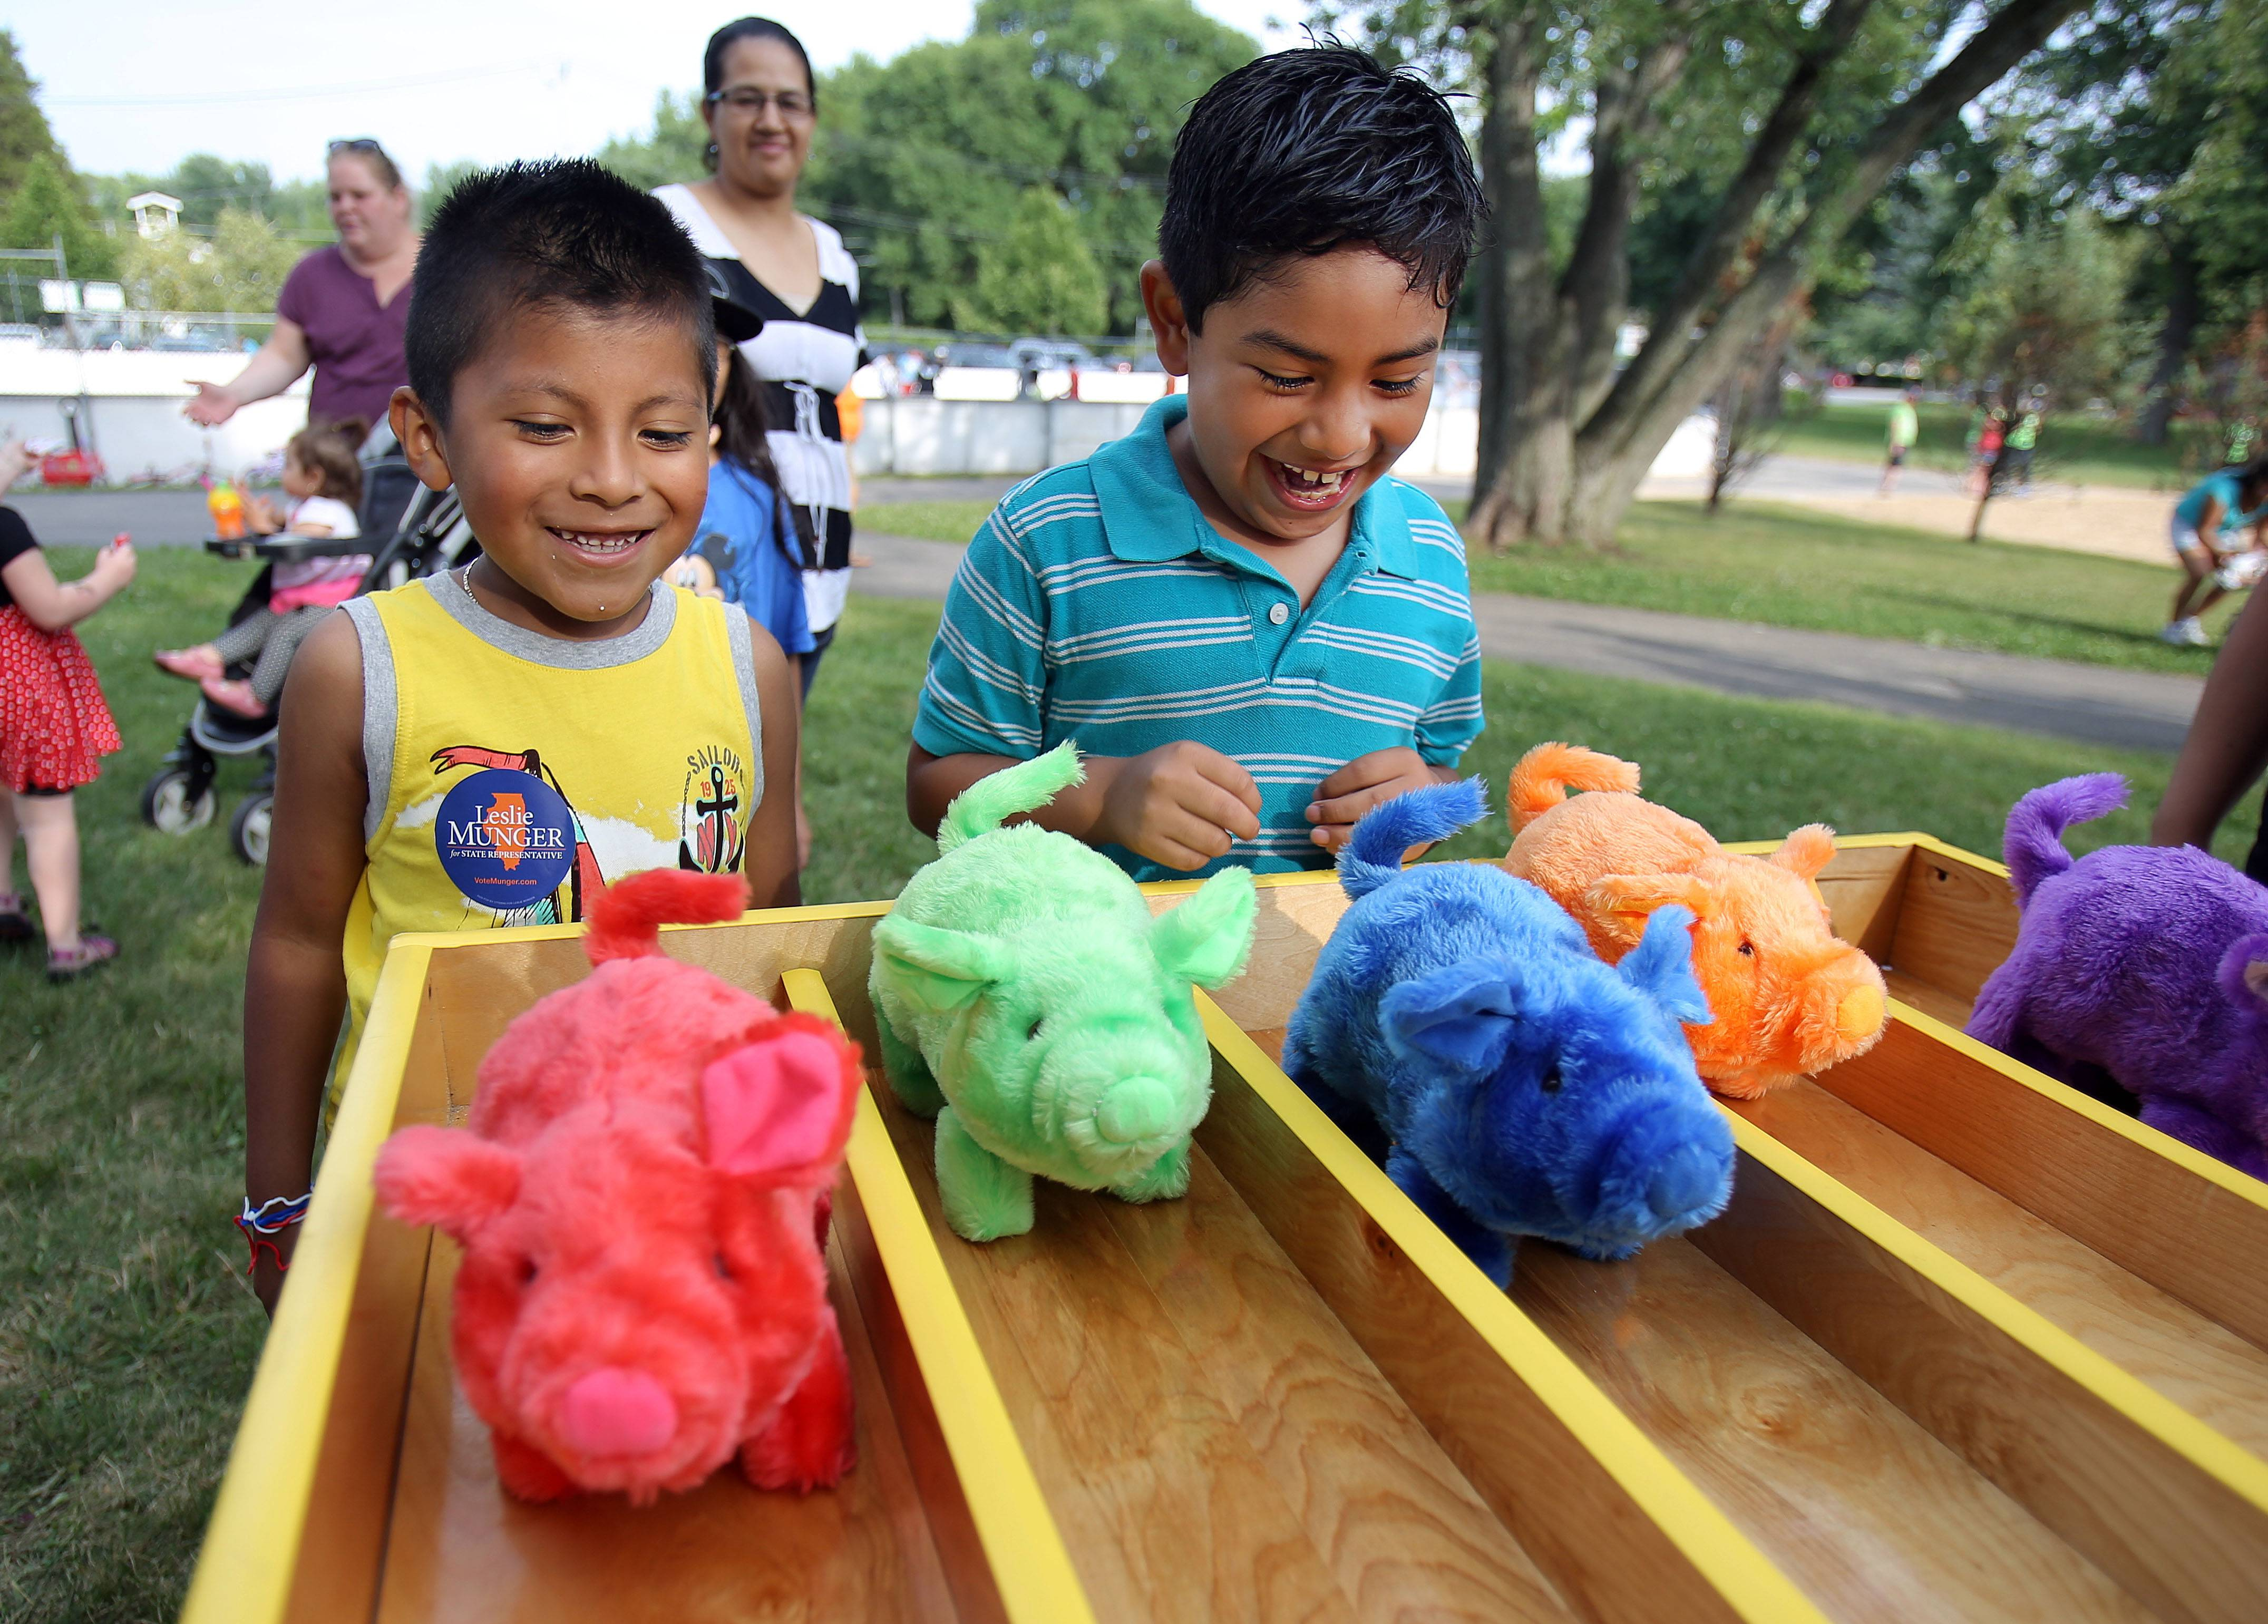 5-year-old Jesus Beronca, left, and 6-year-old Alonso Roman, both of Vernon Hills play a game called Pork Chop Speedway during National Night Out at Hartmann Park in Vernon Hills Tuesday night.